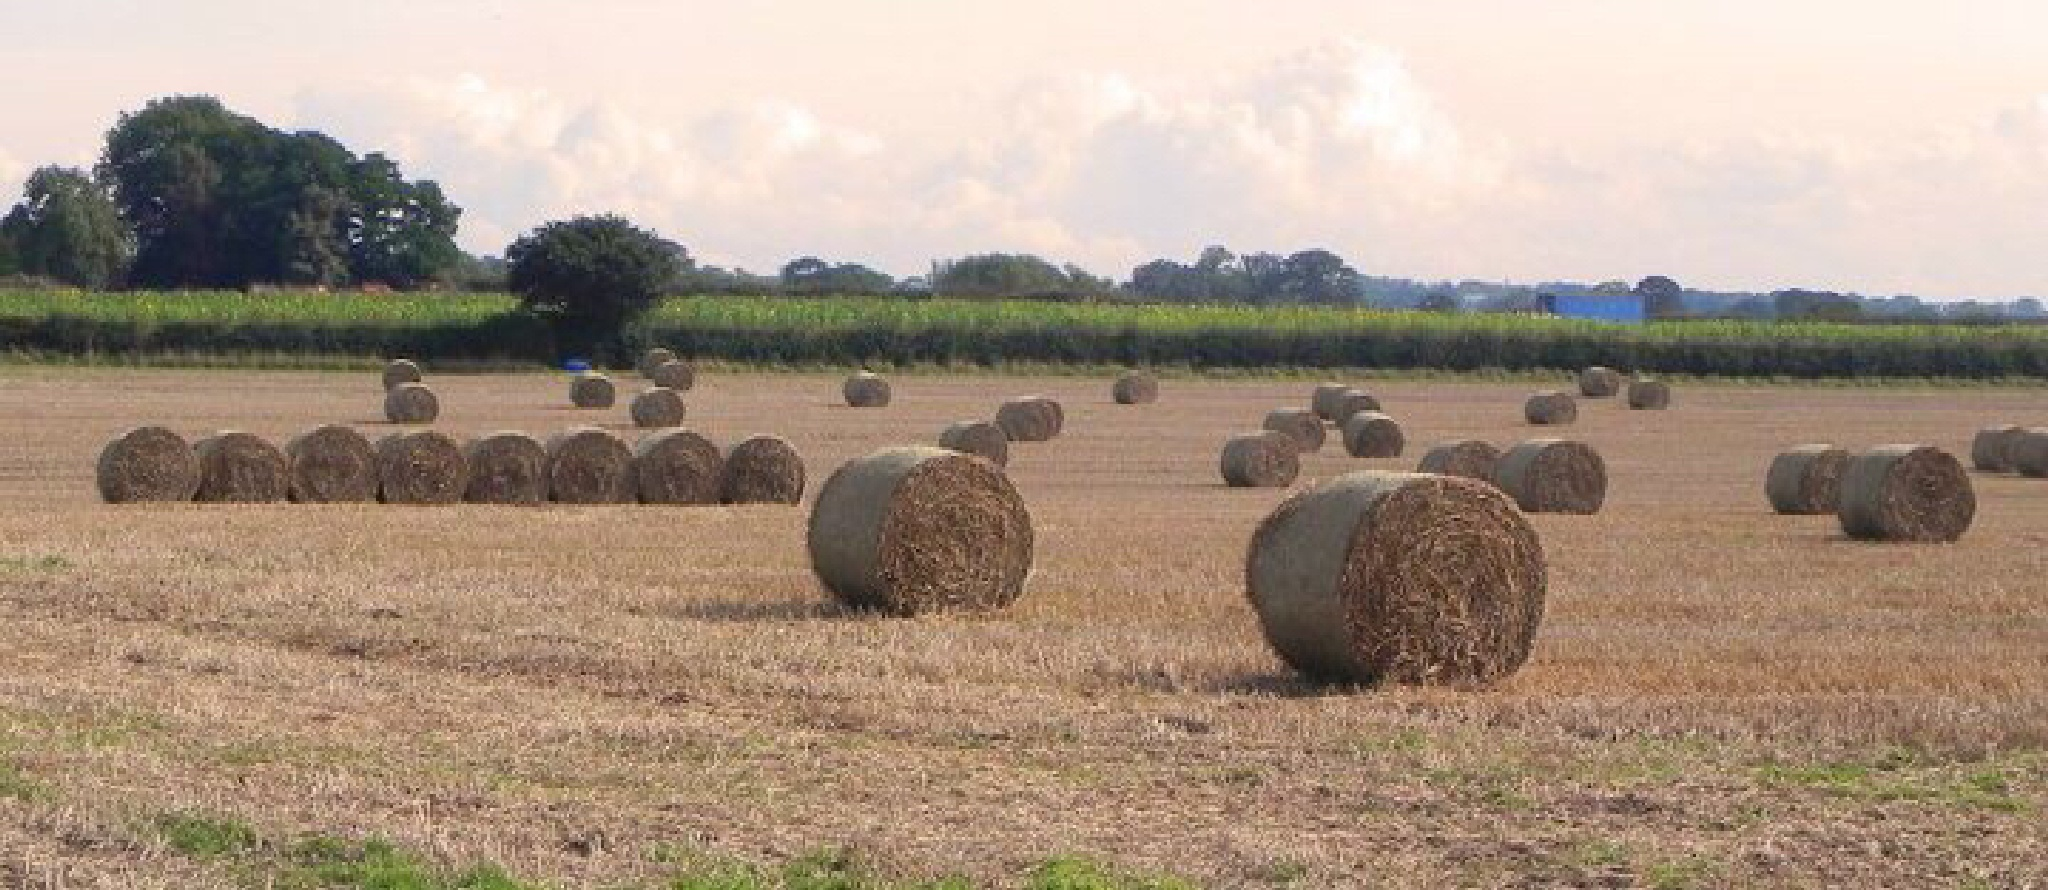 Harvest time by Peter Stowell